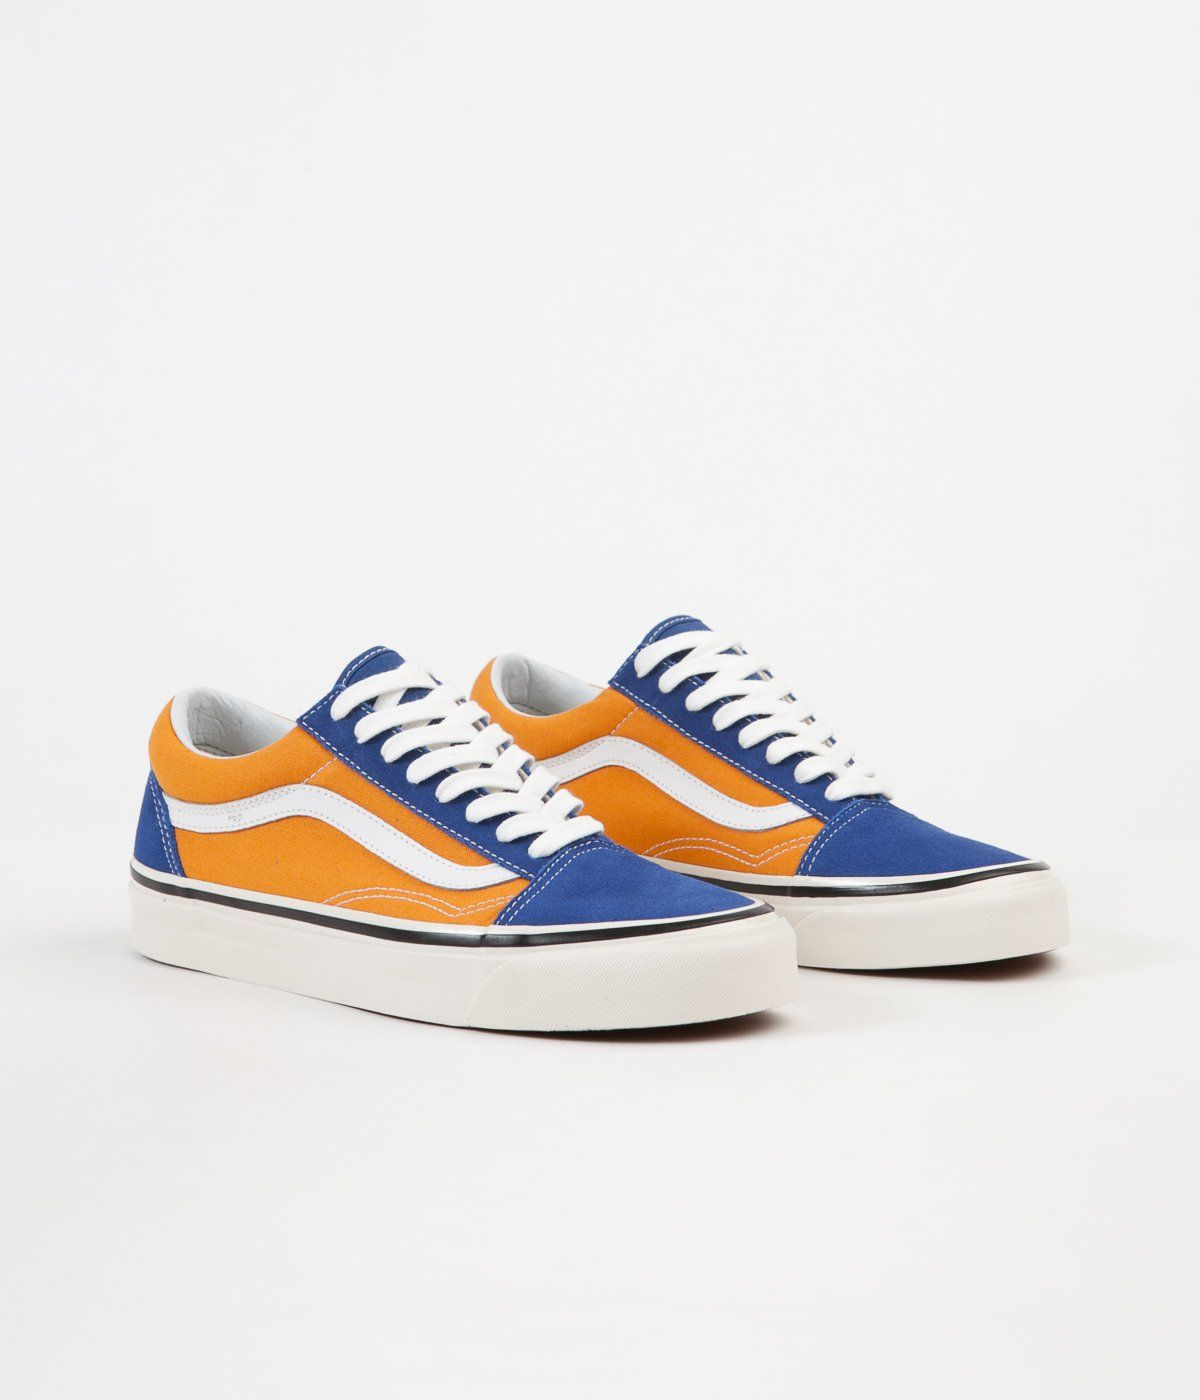 667b42e9ea Vans Old Skool 36 DX Anaheim Factory Shoes - OG Blue   OG Gold ...